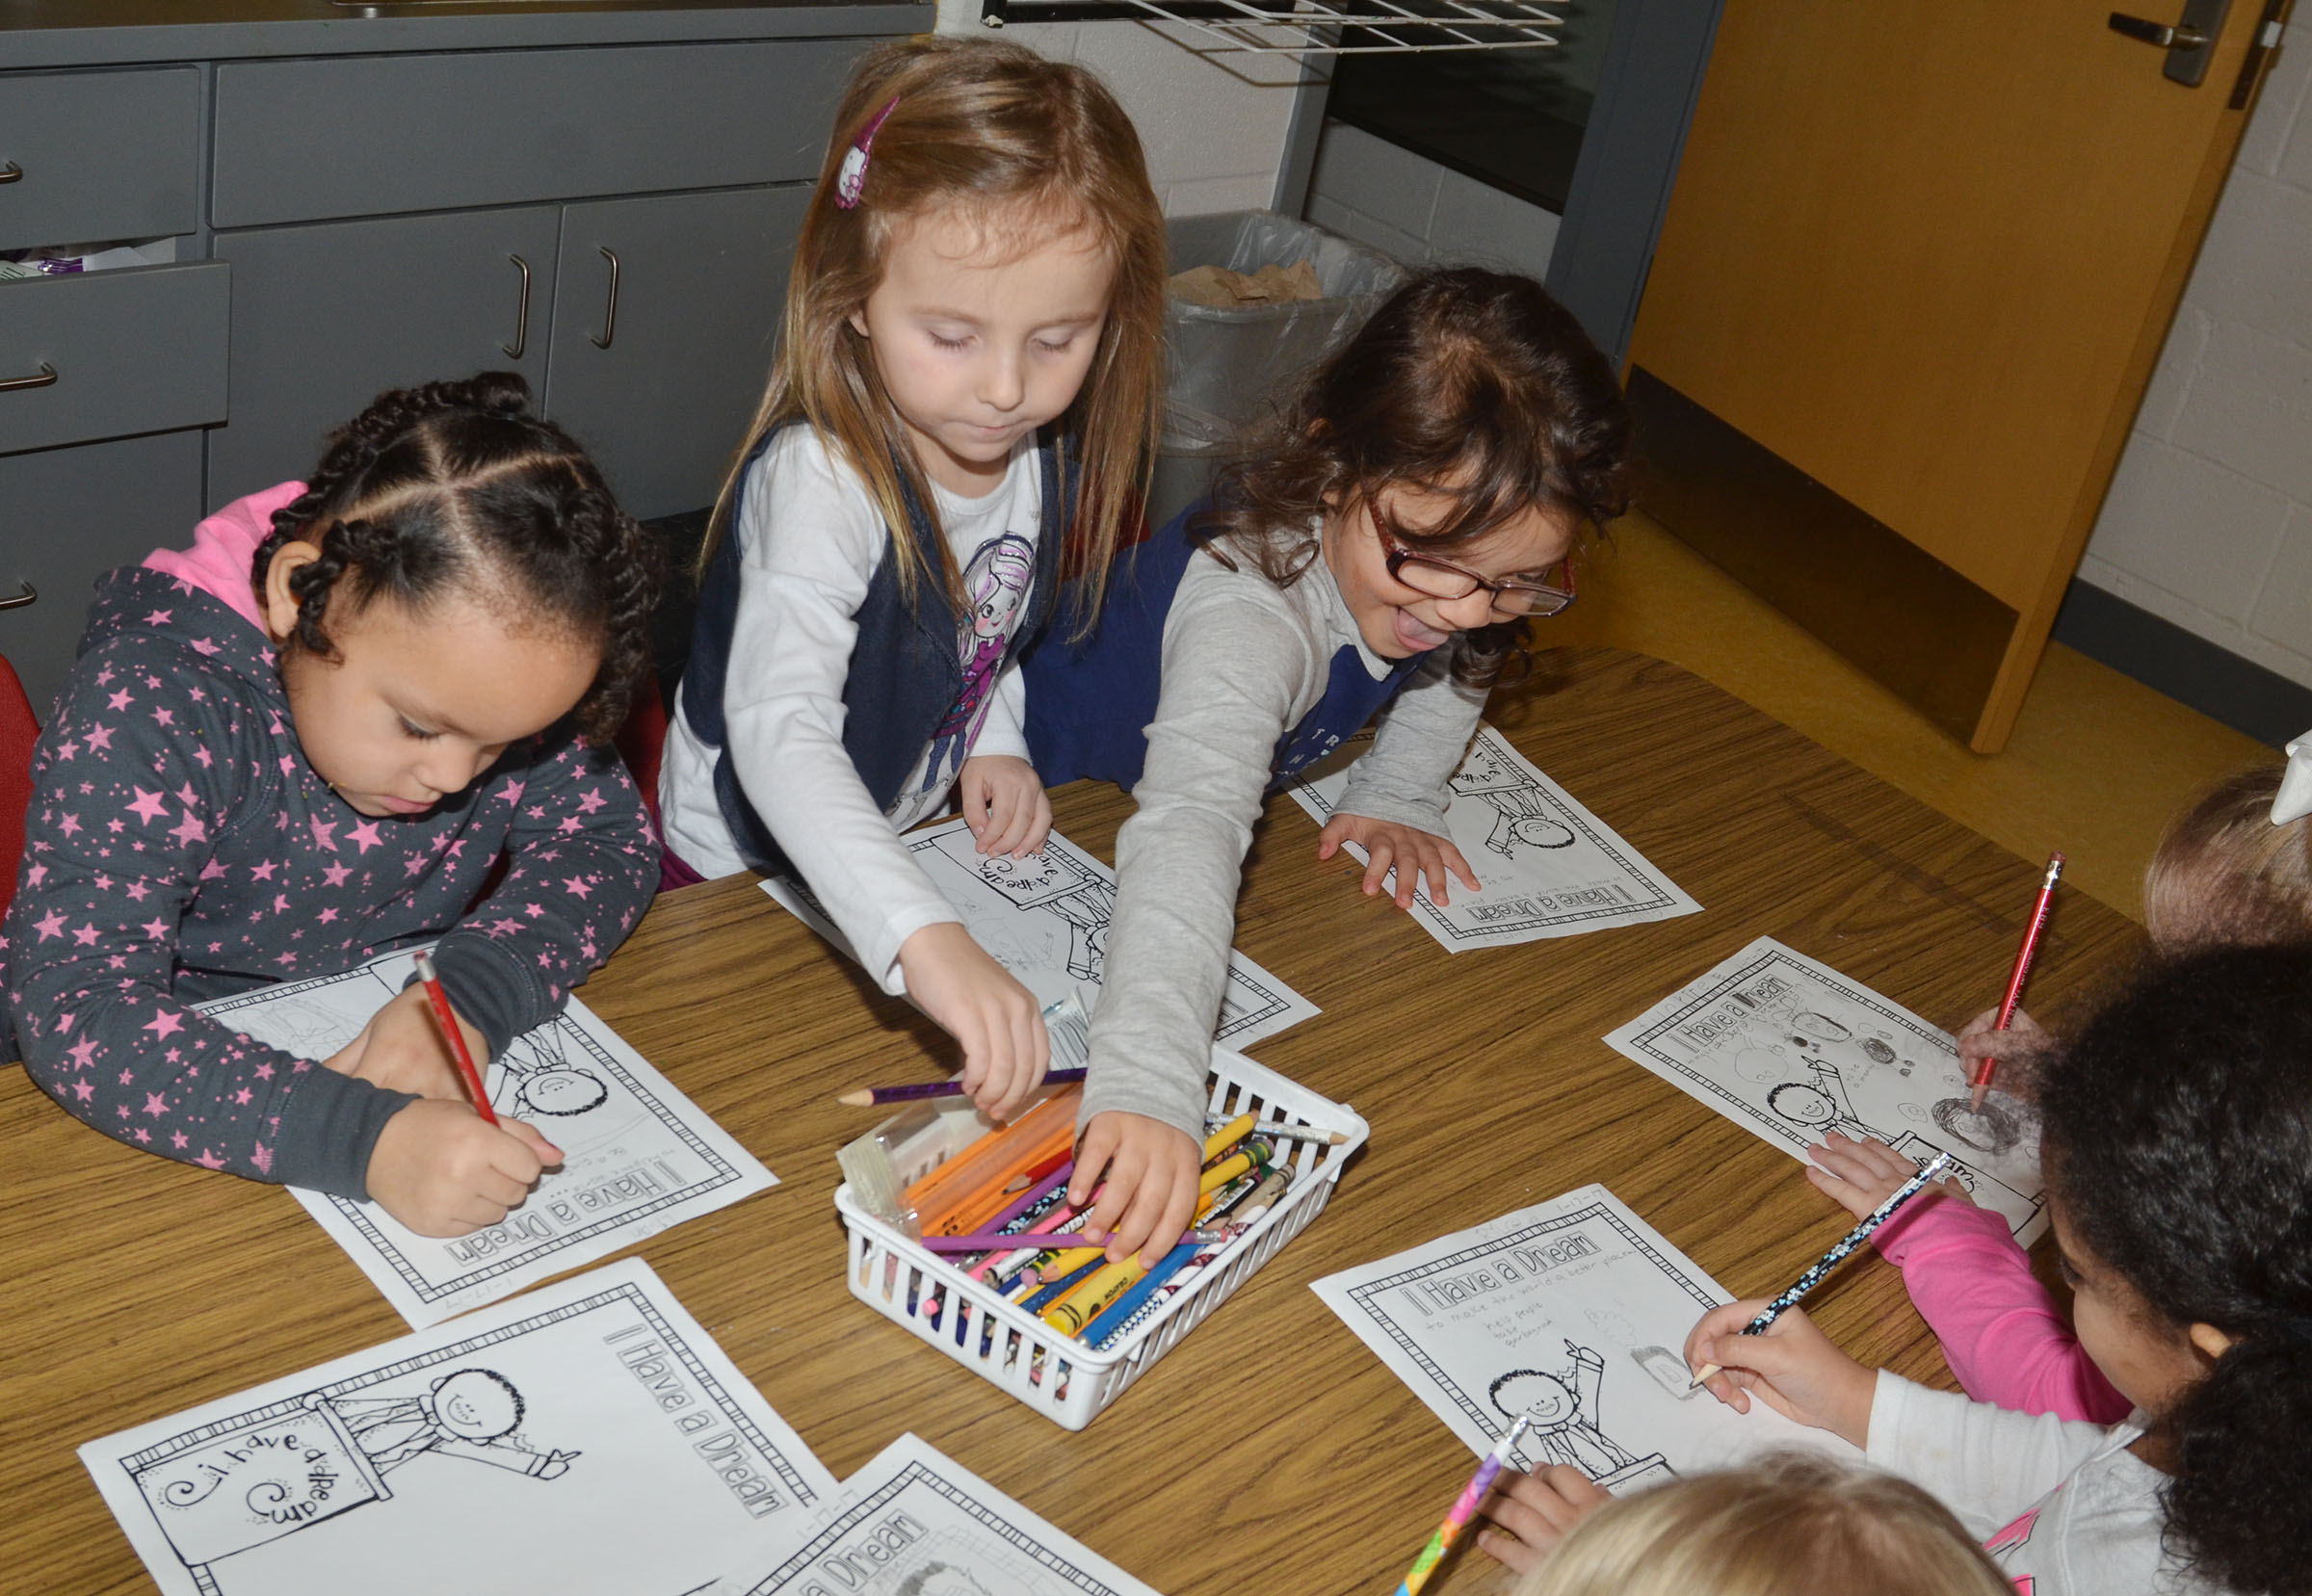 From left, CES preschool students Lillian Merriweather, Tabitha Leggett and Addisyn Taylor draw what they want to do when they grow up to change the world.